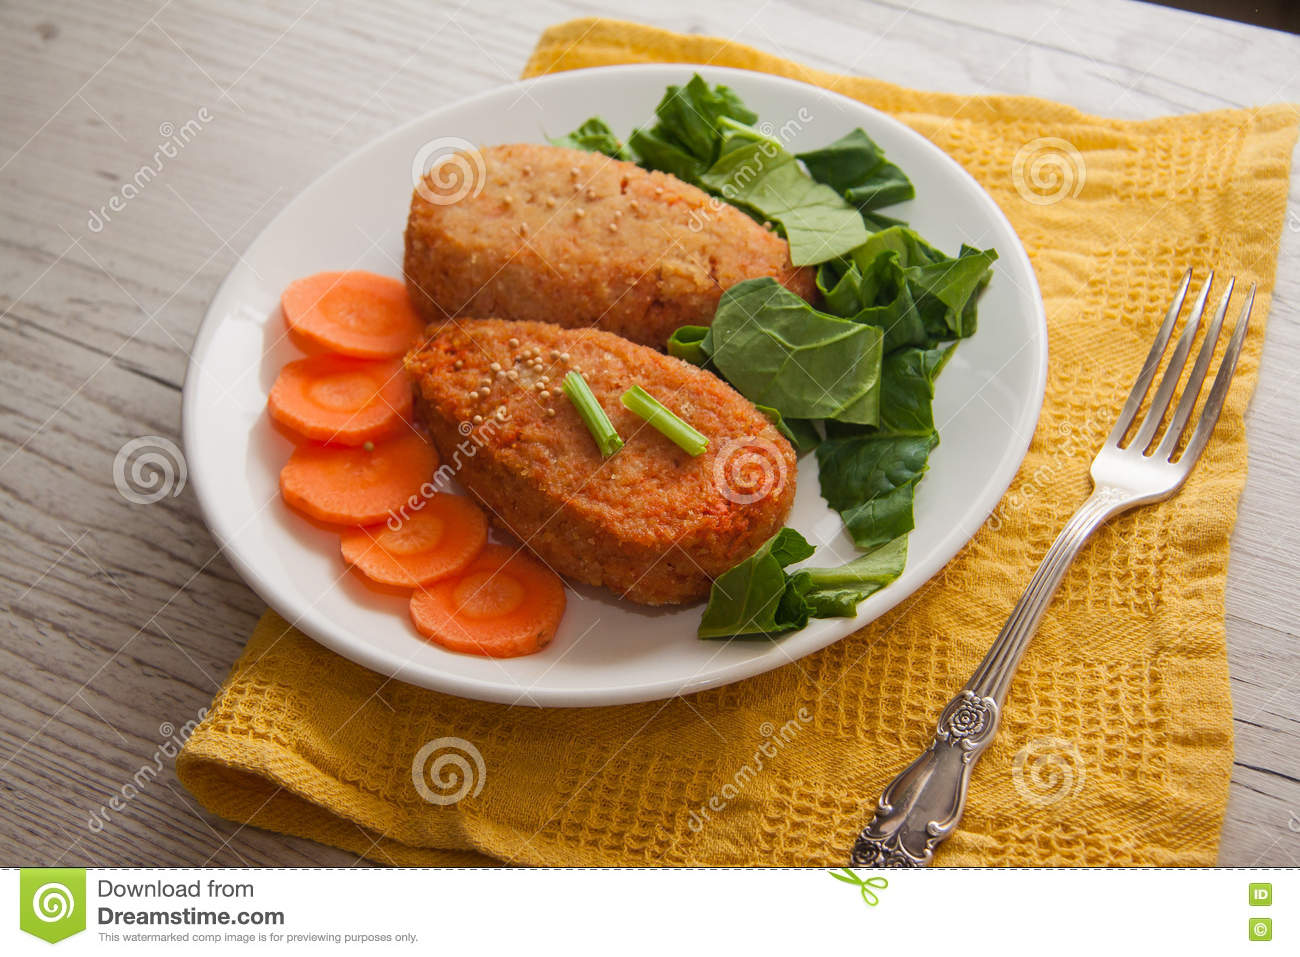 Carrot pancakes with spinach